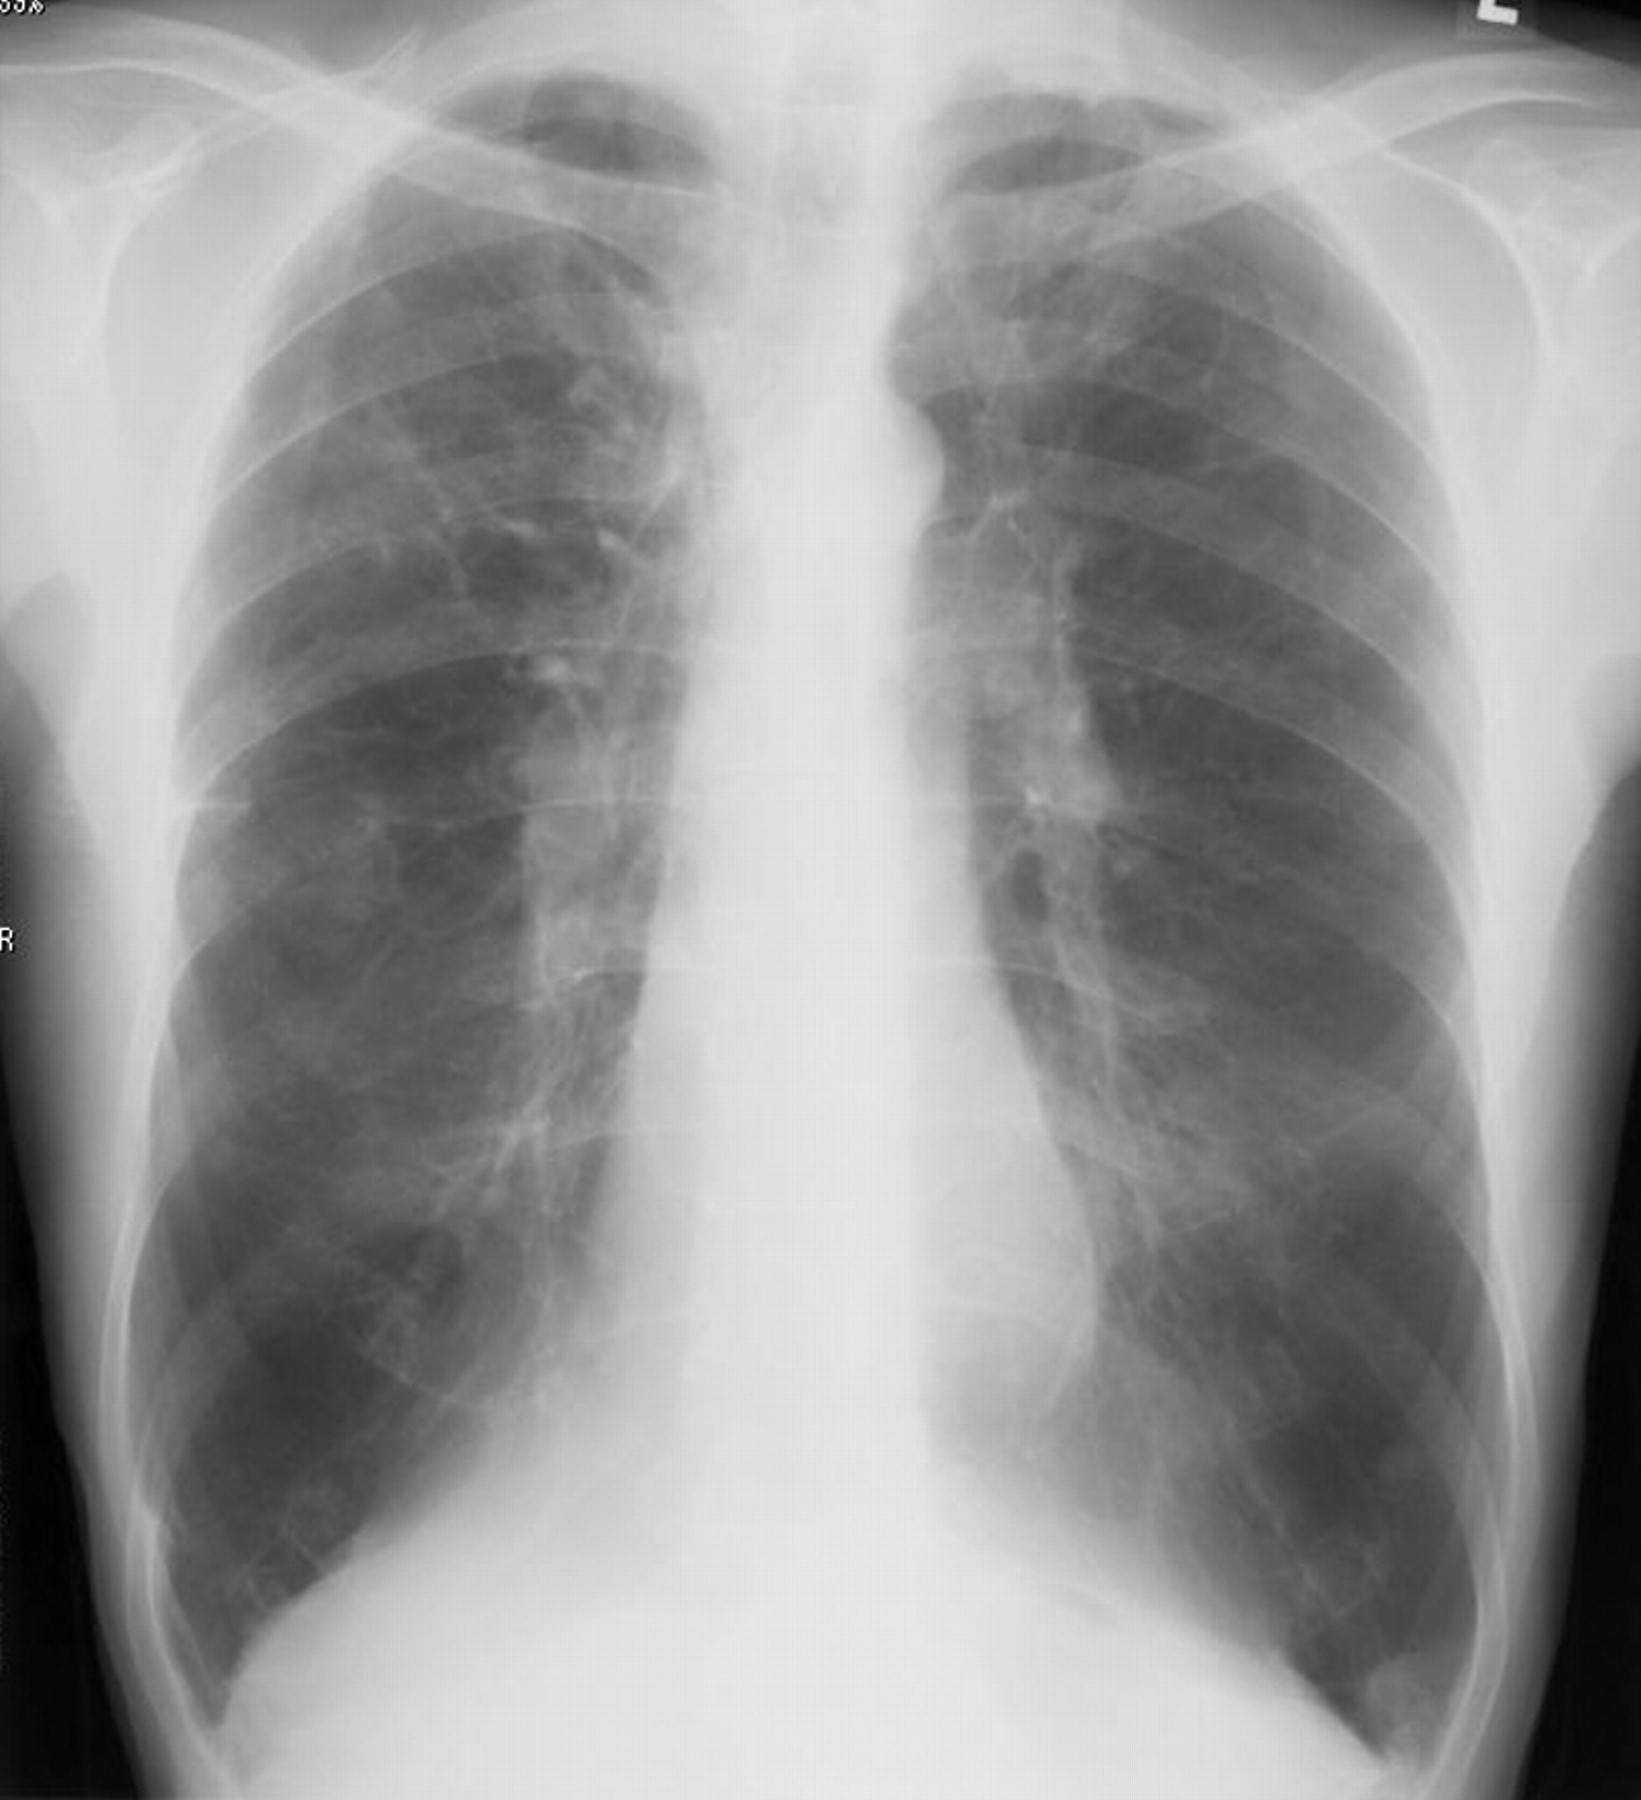 how to tell hyperinflation on chest x ray